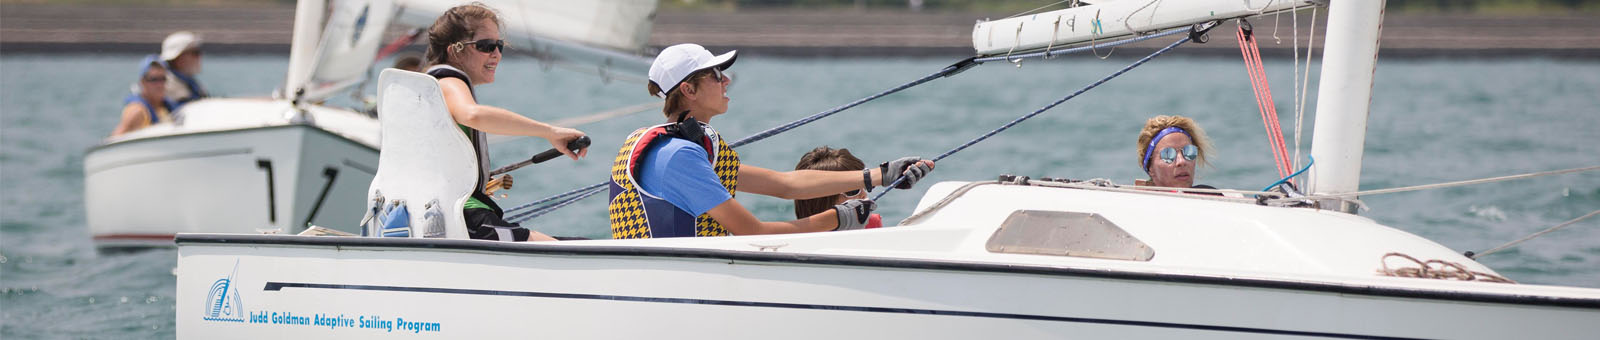 Judd Goldman Adaptive Sailing Program